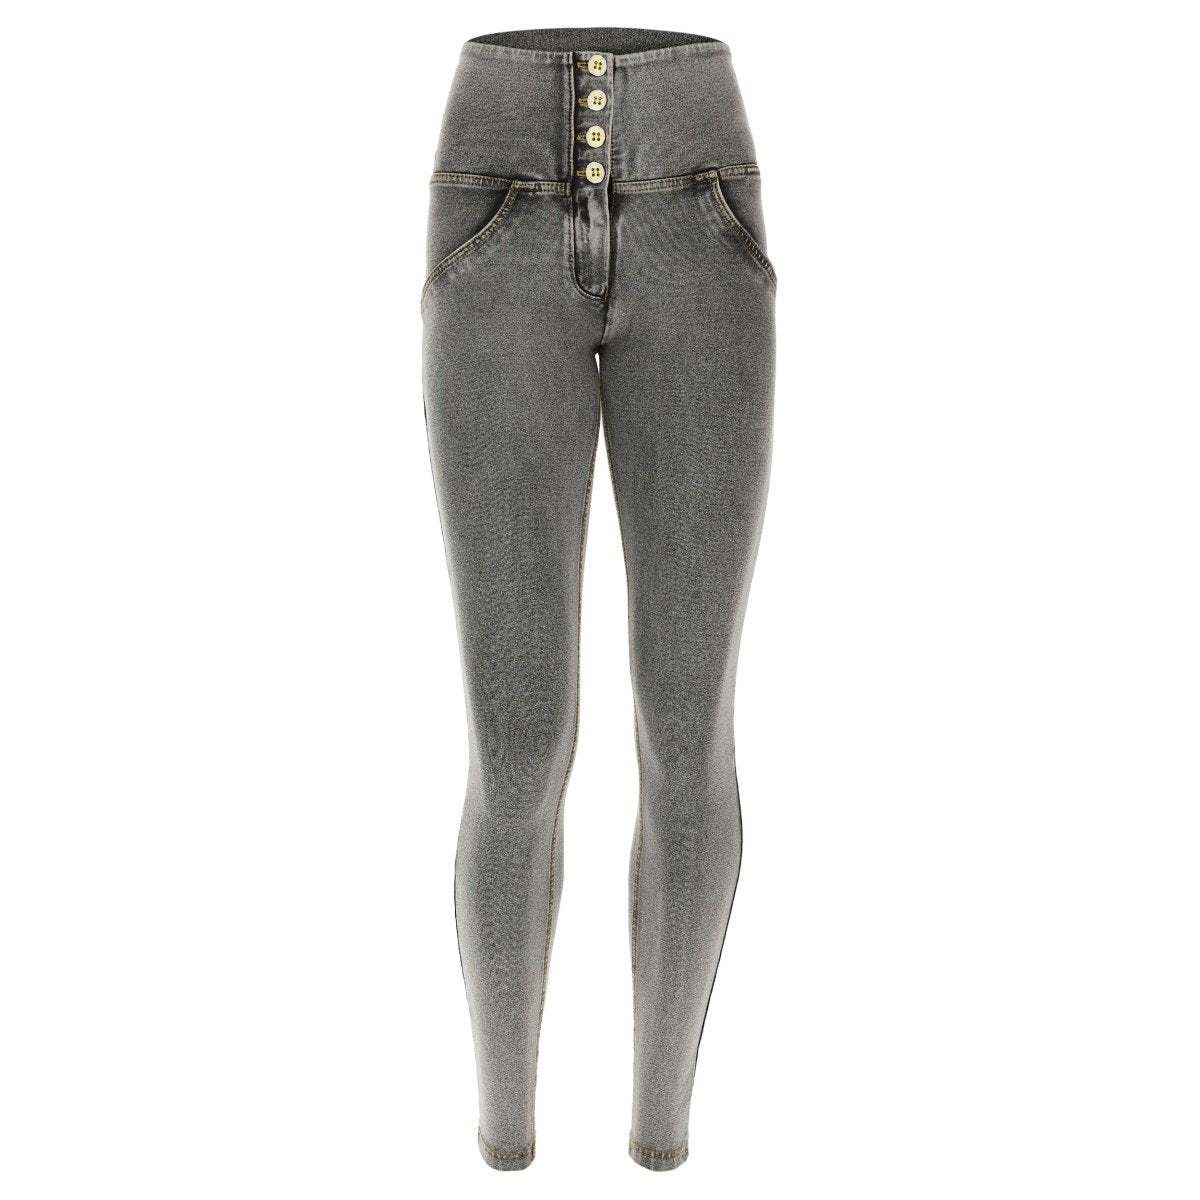 GREY DENIM 4 BUTTON HIGH RISE